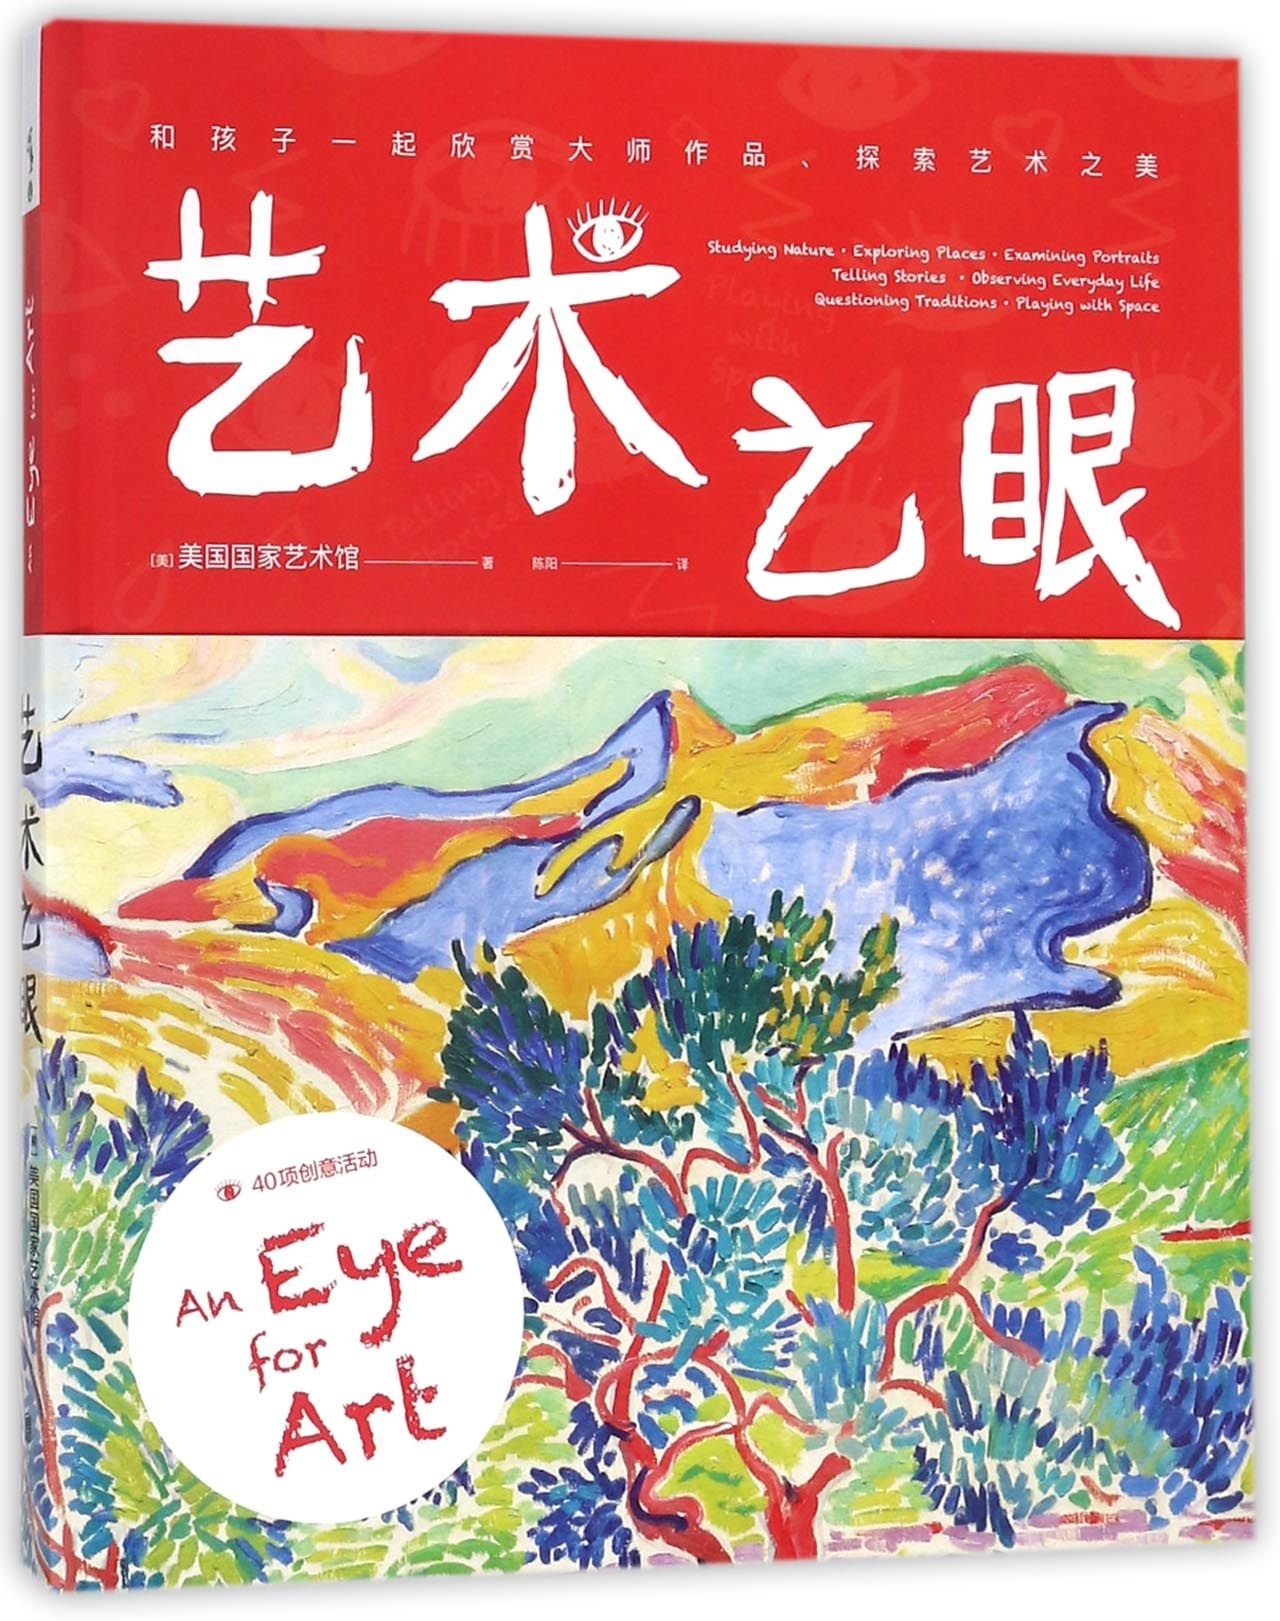 Download An Eye for Art (Chinese Edition) PDF